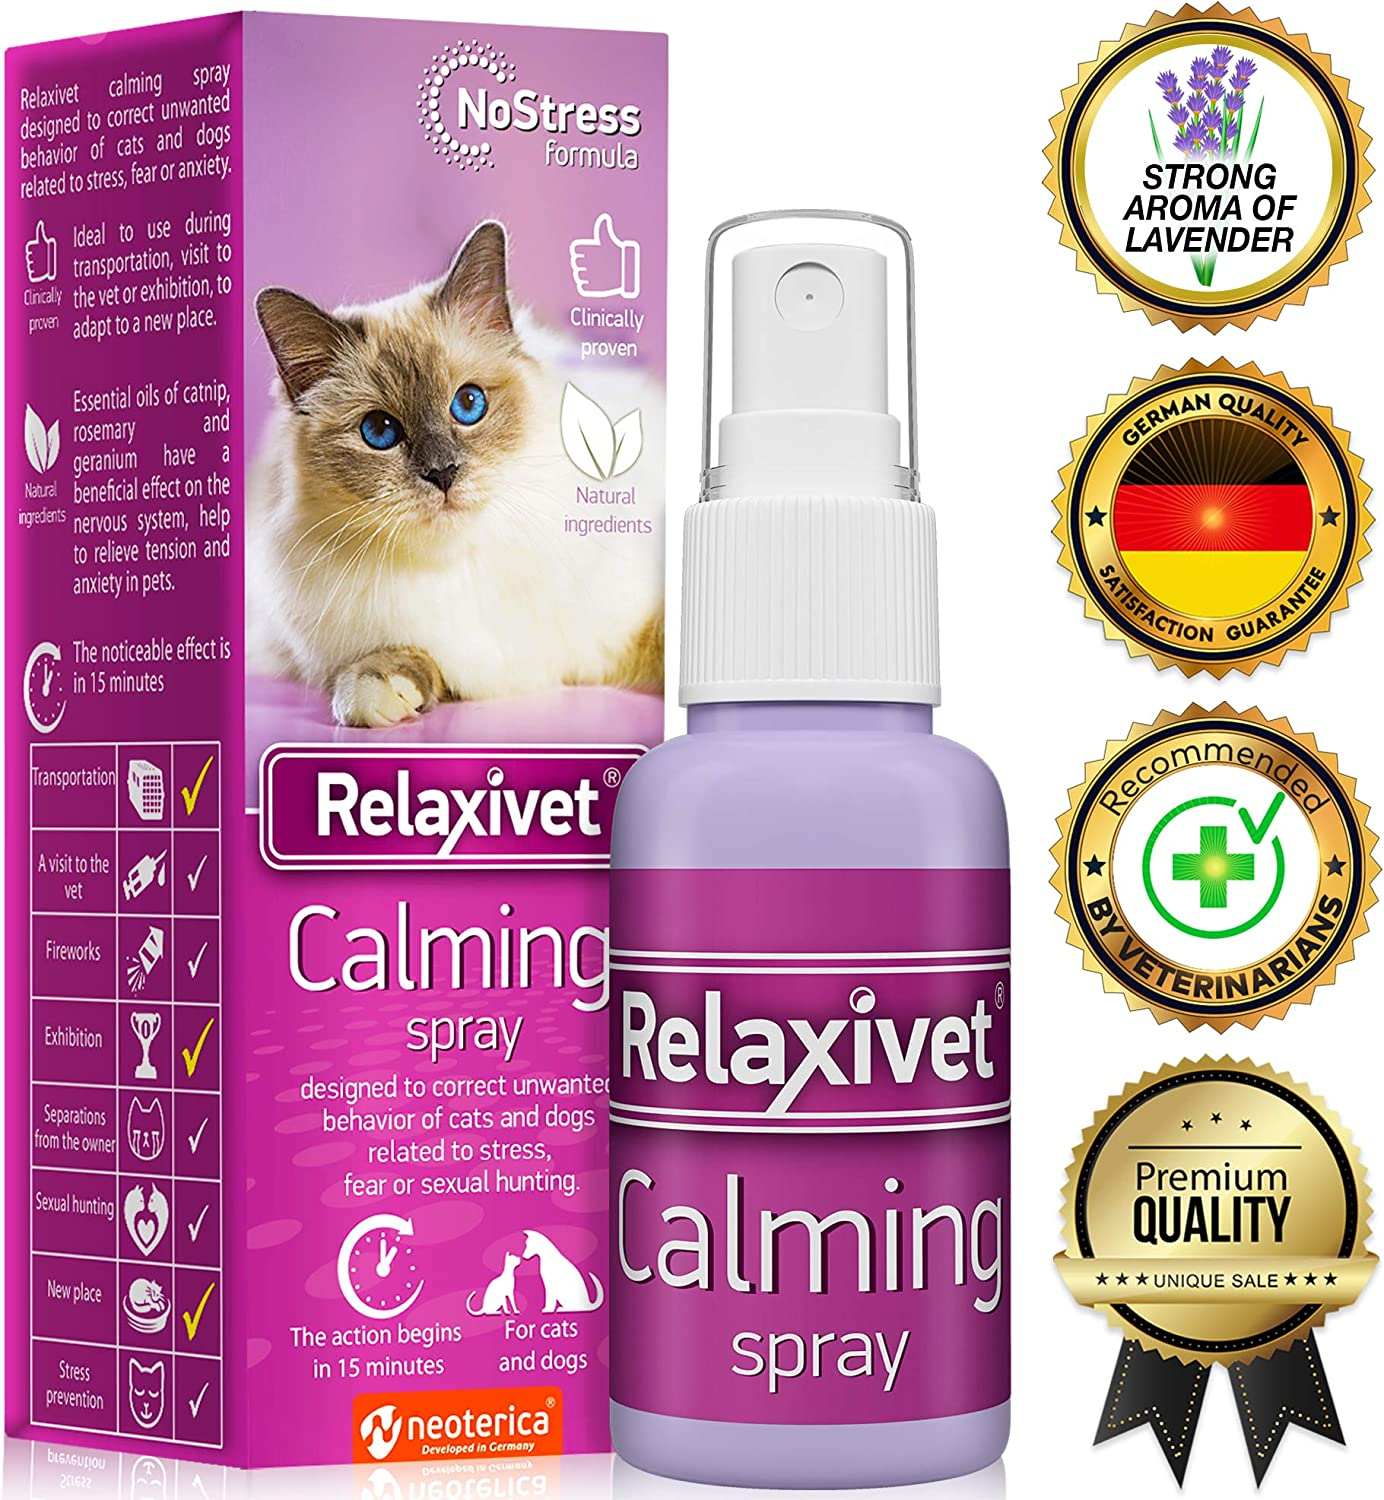 Relaxivet Pheromone Calming Spray for Cats and Dogs with a Long-Lasting Calming Effect - #1 Spray for Stress Prevent and Relax - Anti-Anxiety Spray for Pets